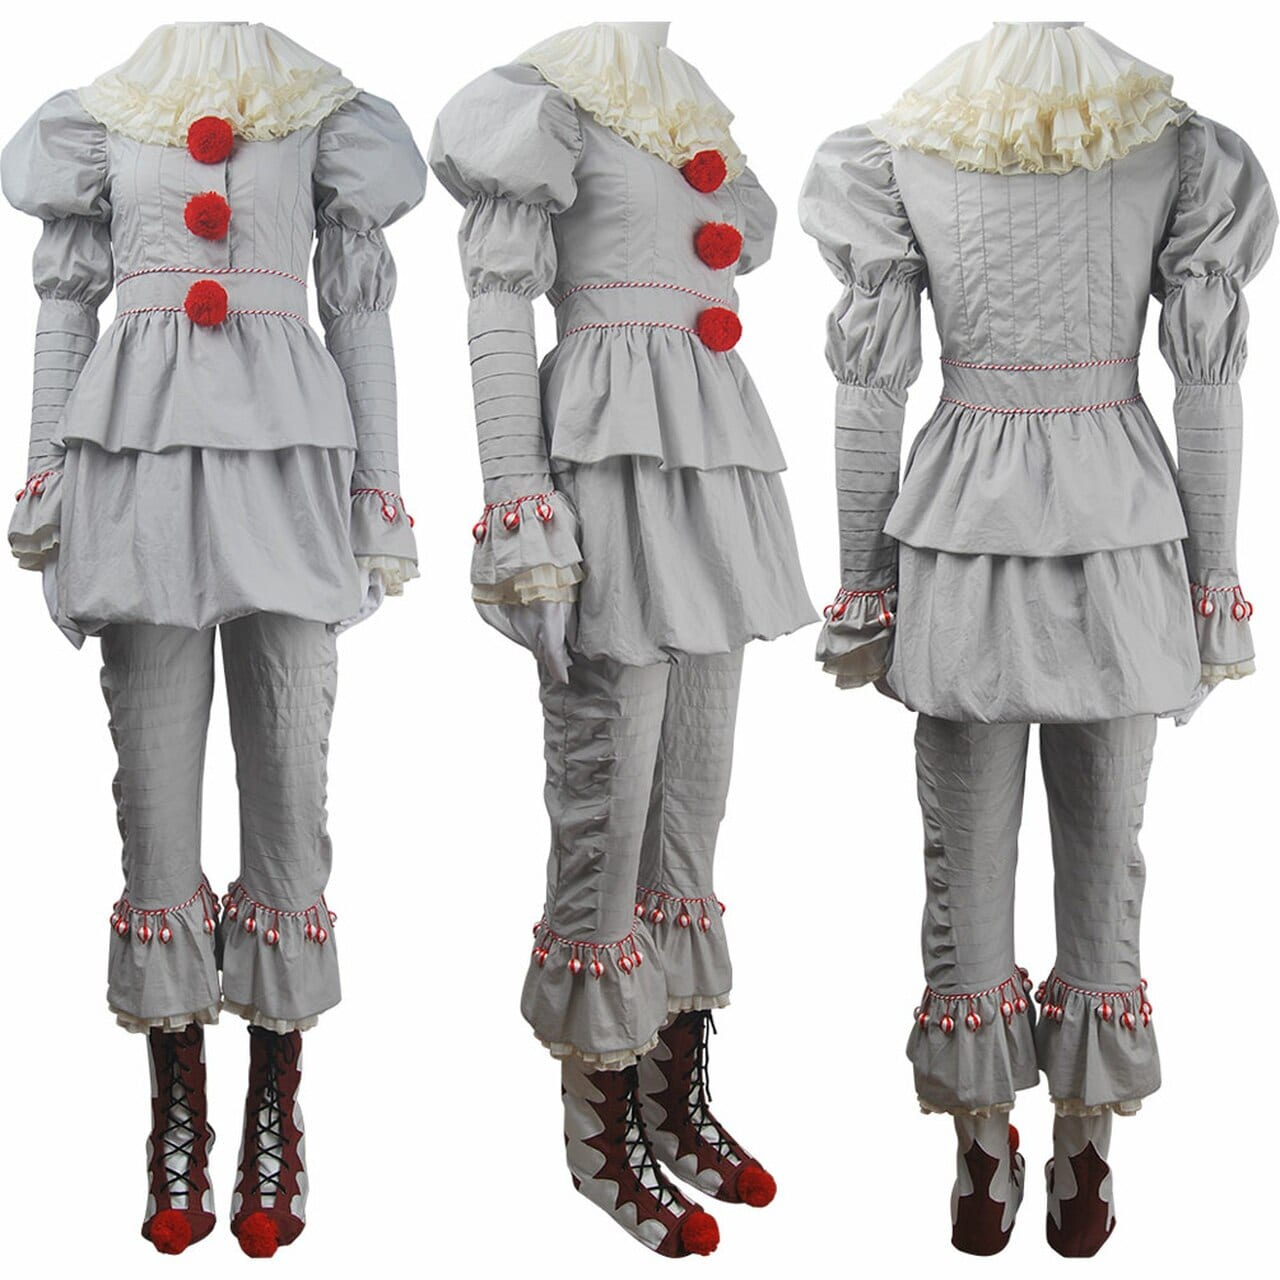 Pennywise the Clown costume buying guide